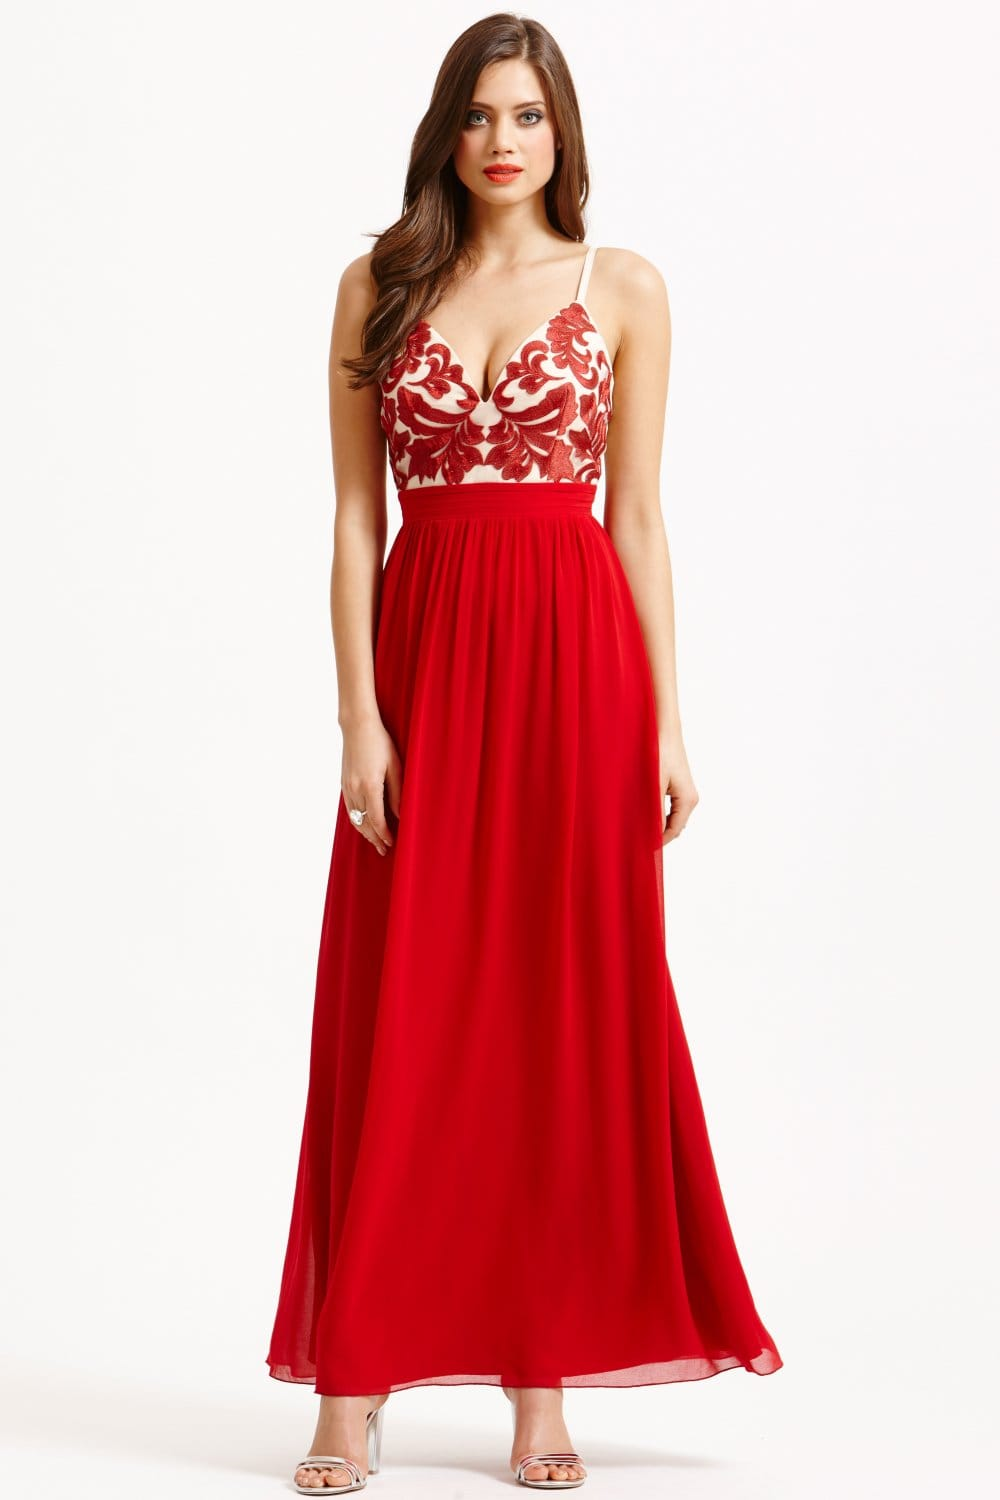 Find red maxi dresses at ShopStyle. Shop the latest collection of red maxi dresses from the most popular stores - all in one place.